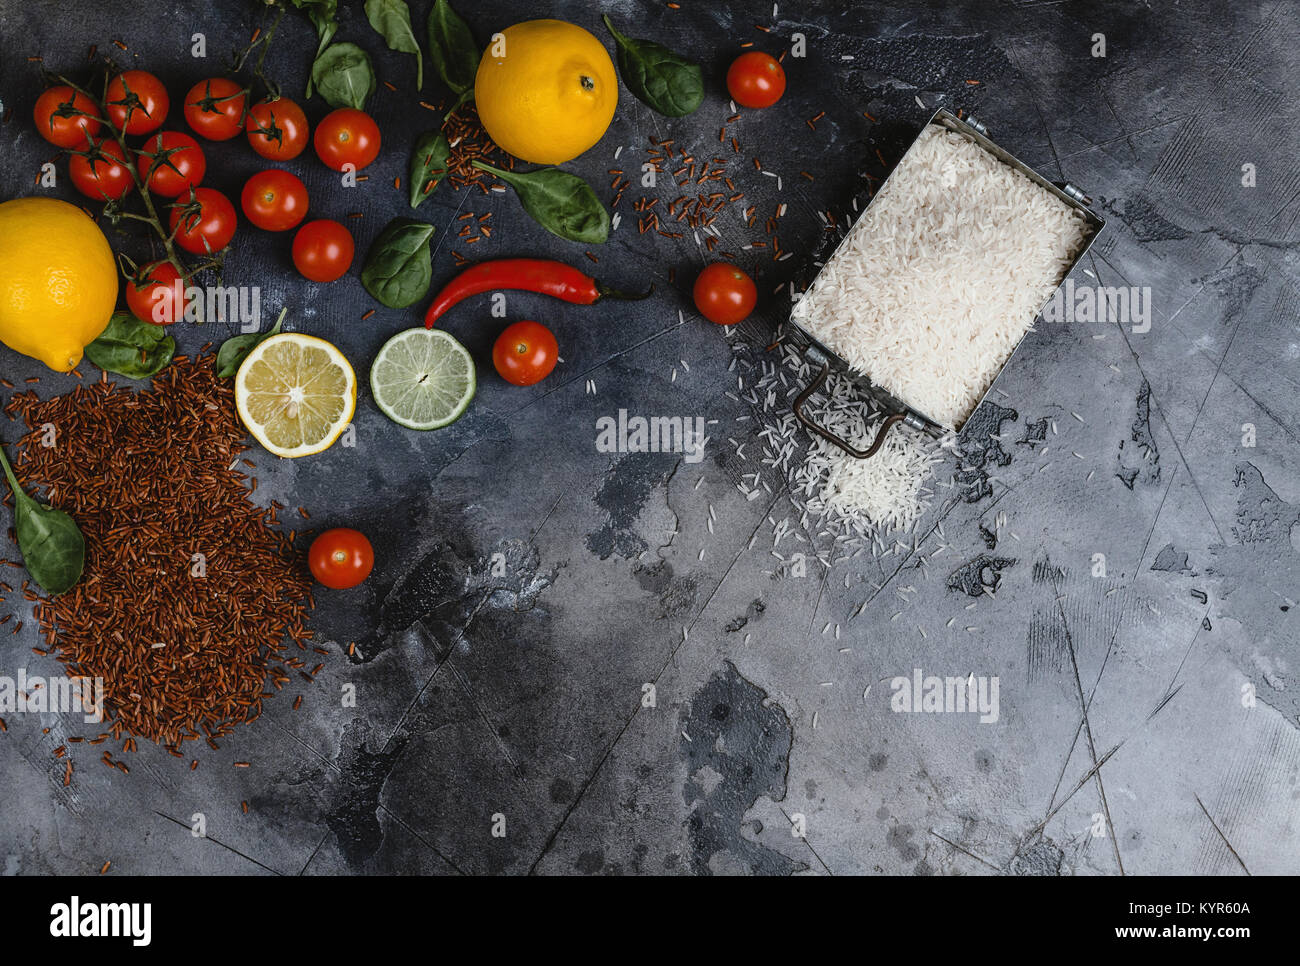 top view of raw rice in container, spices and vegetables on scratched grey surface - Stock Image